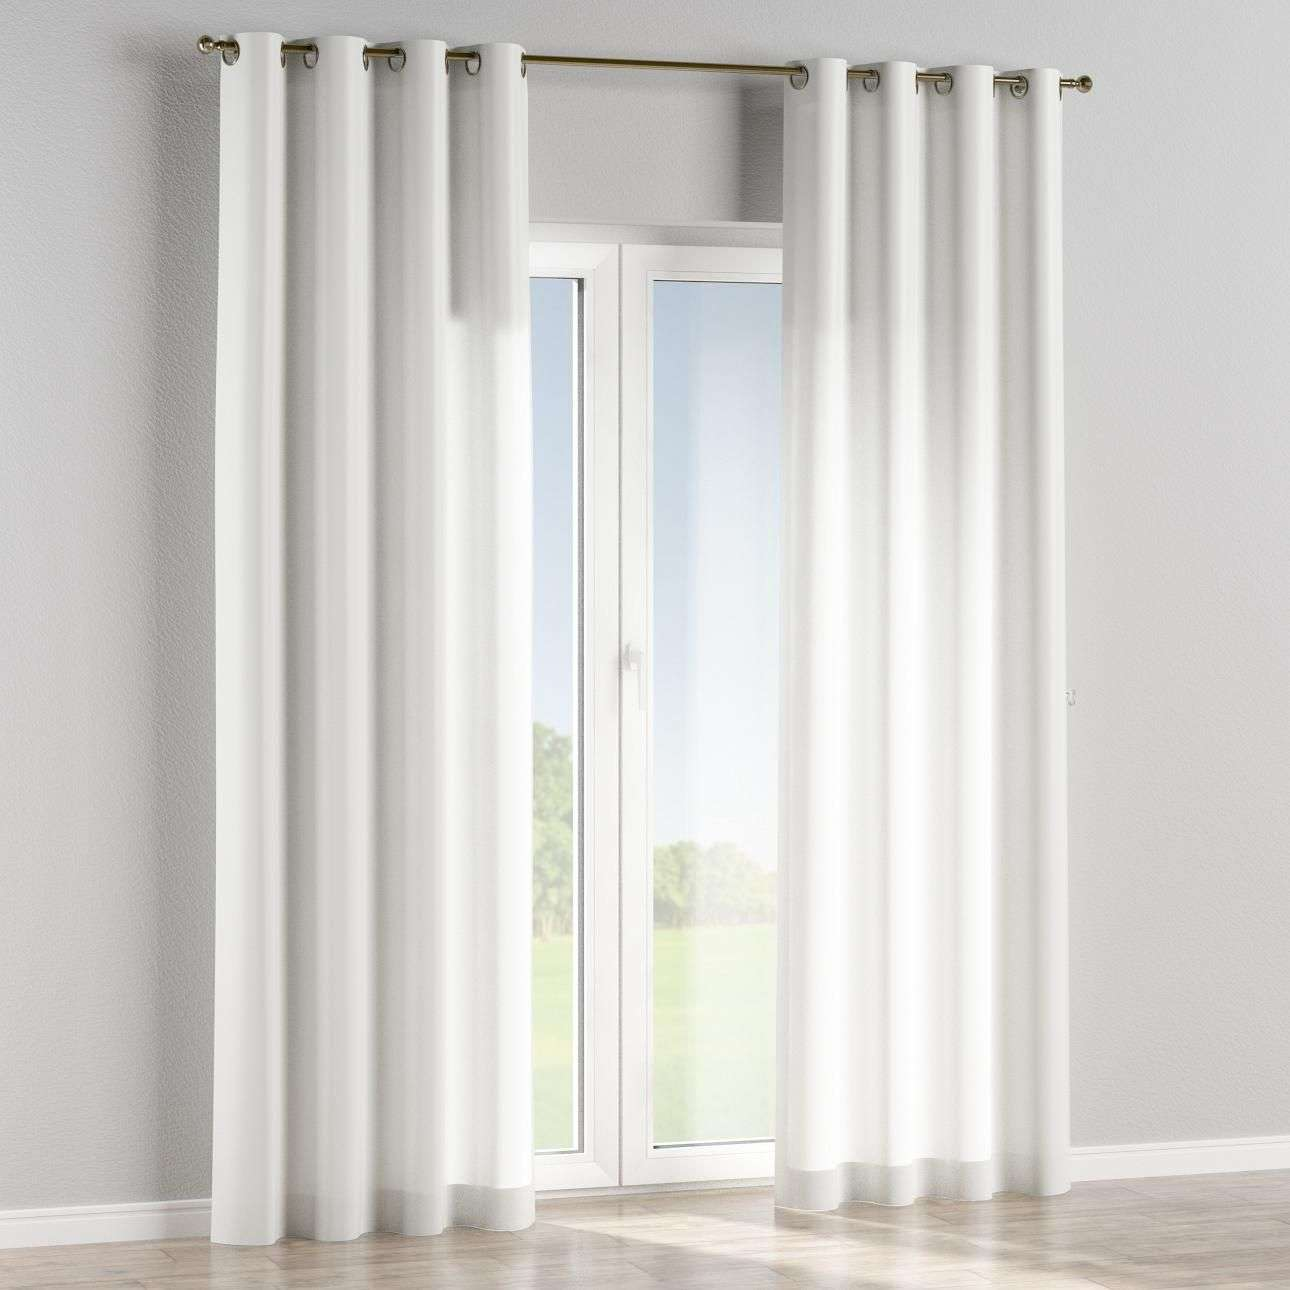 Eyelet curtains in collection Milano, fabric: 150-33